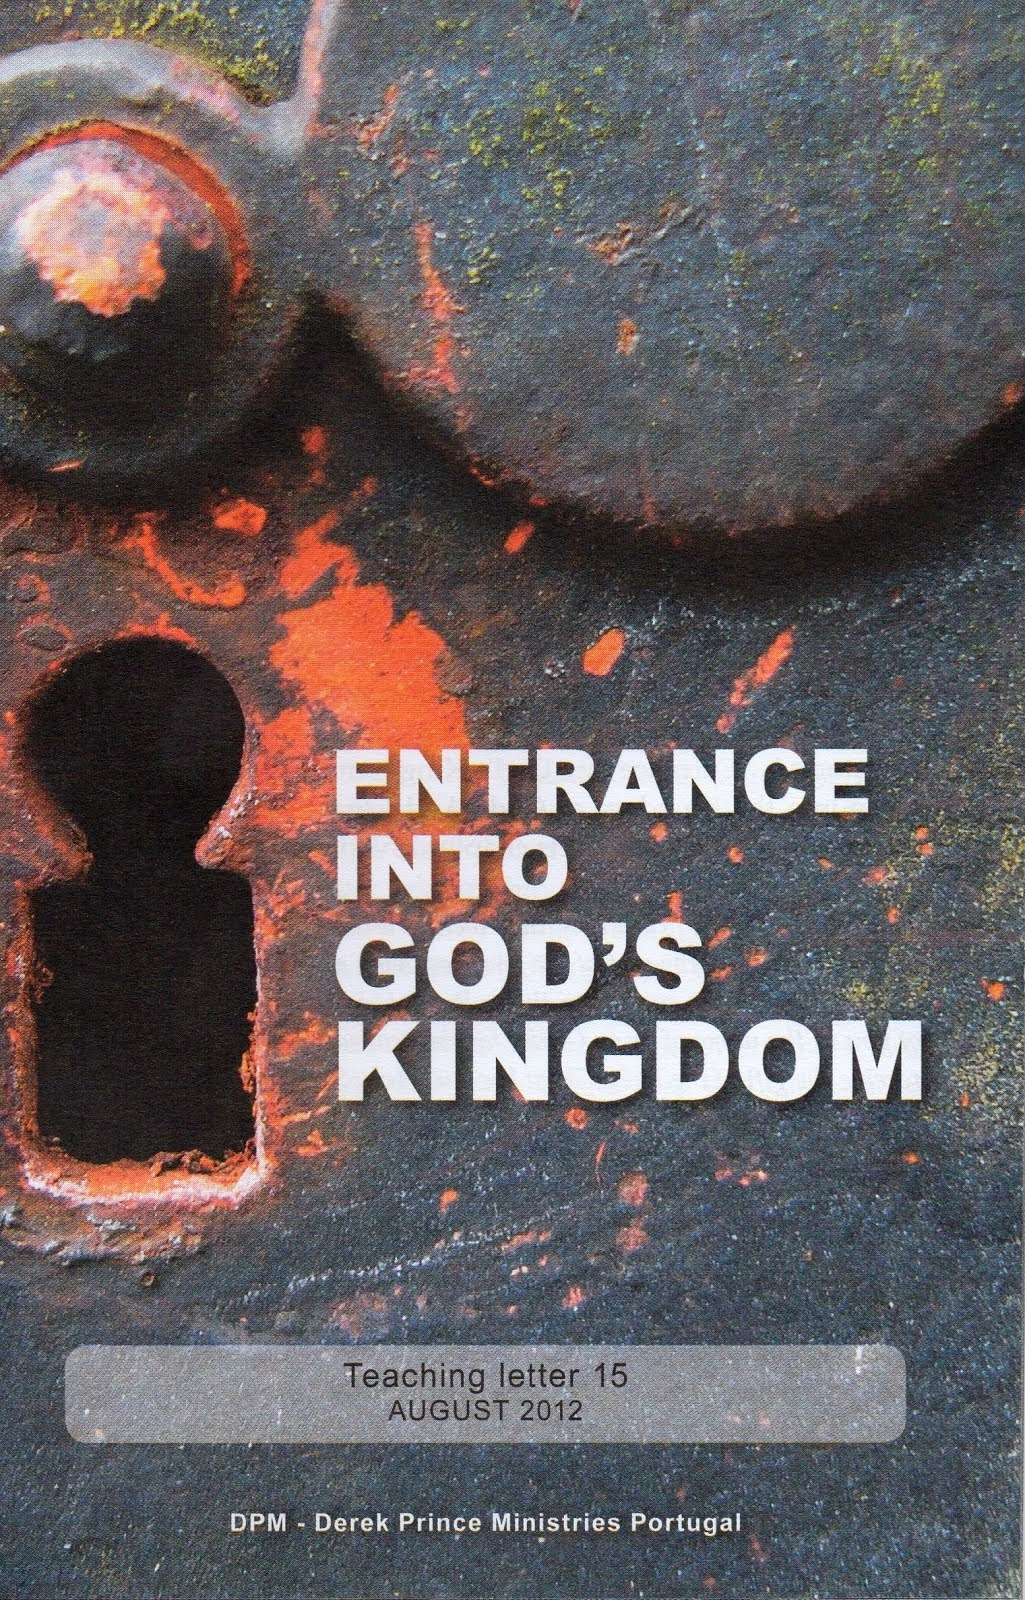 Entrance into God's Kingdom